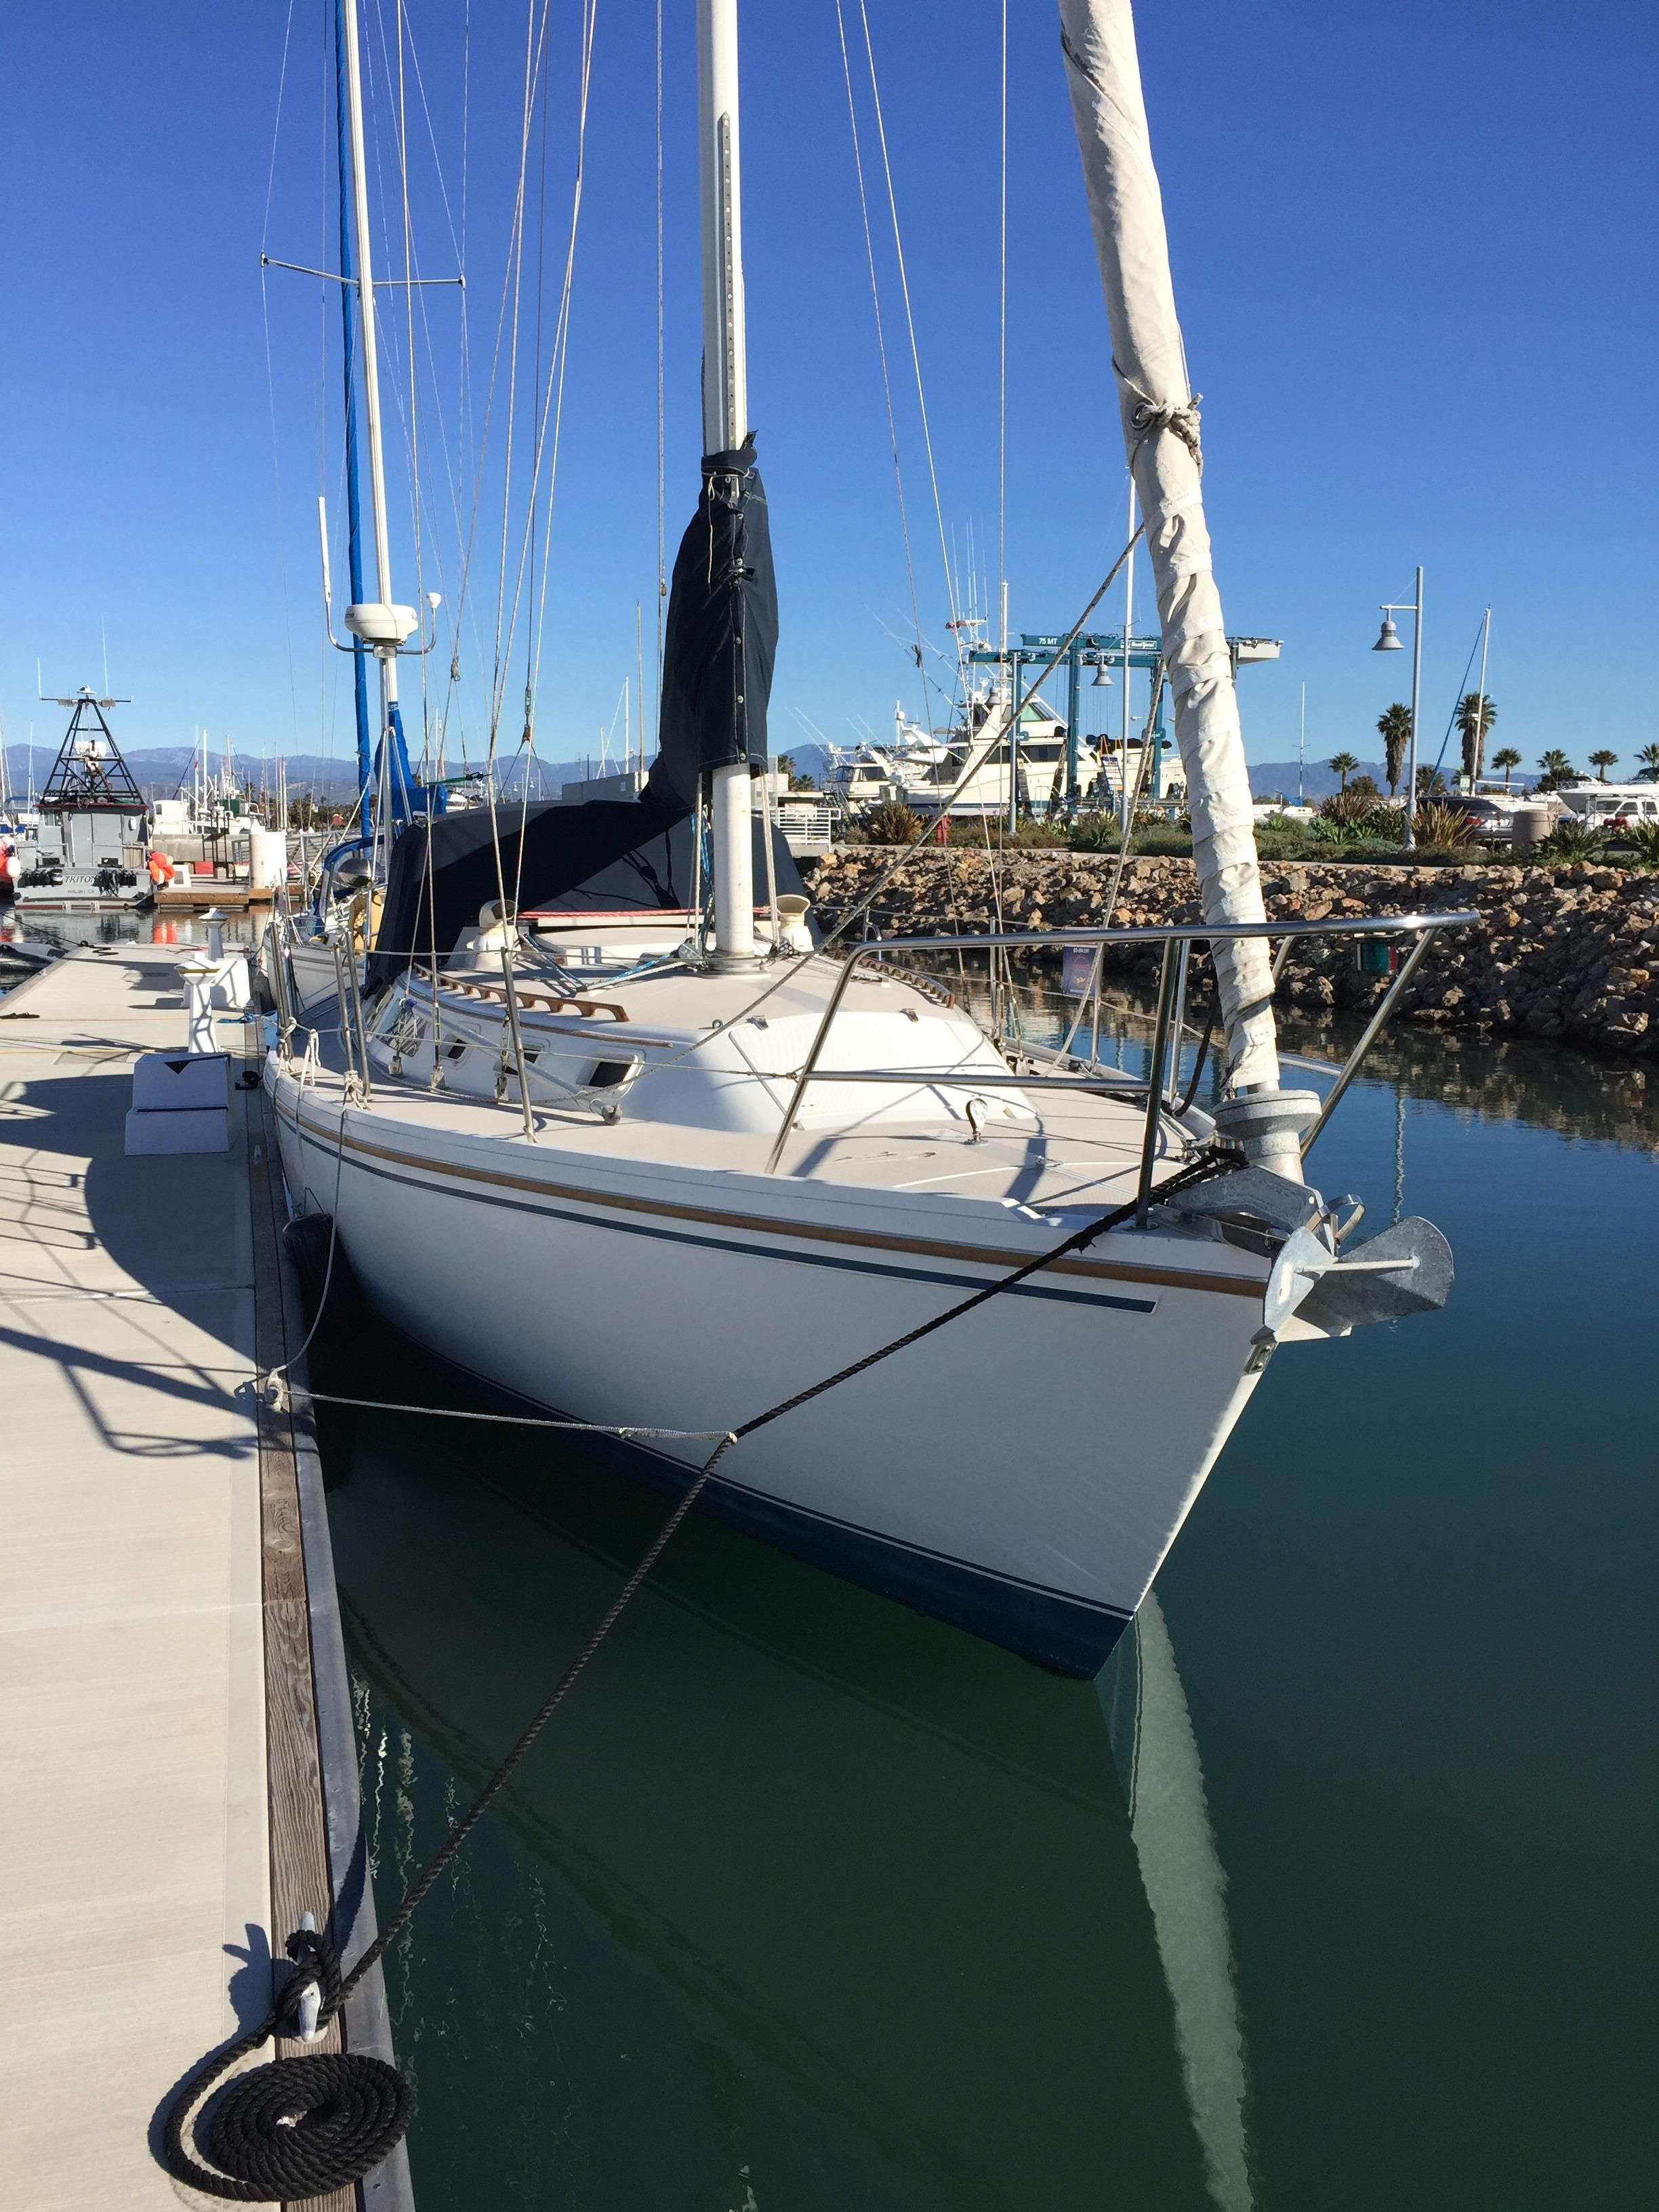 Sail Channel Islands Oxnard: 1987 Catalina 34 Sail Boat For Sale